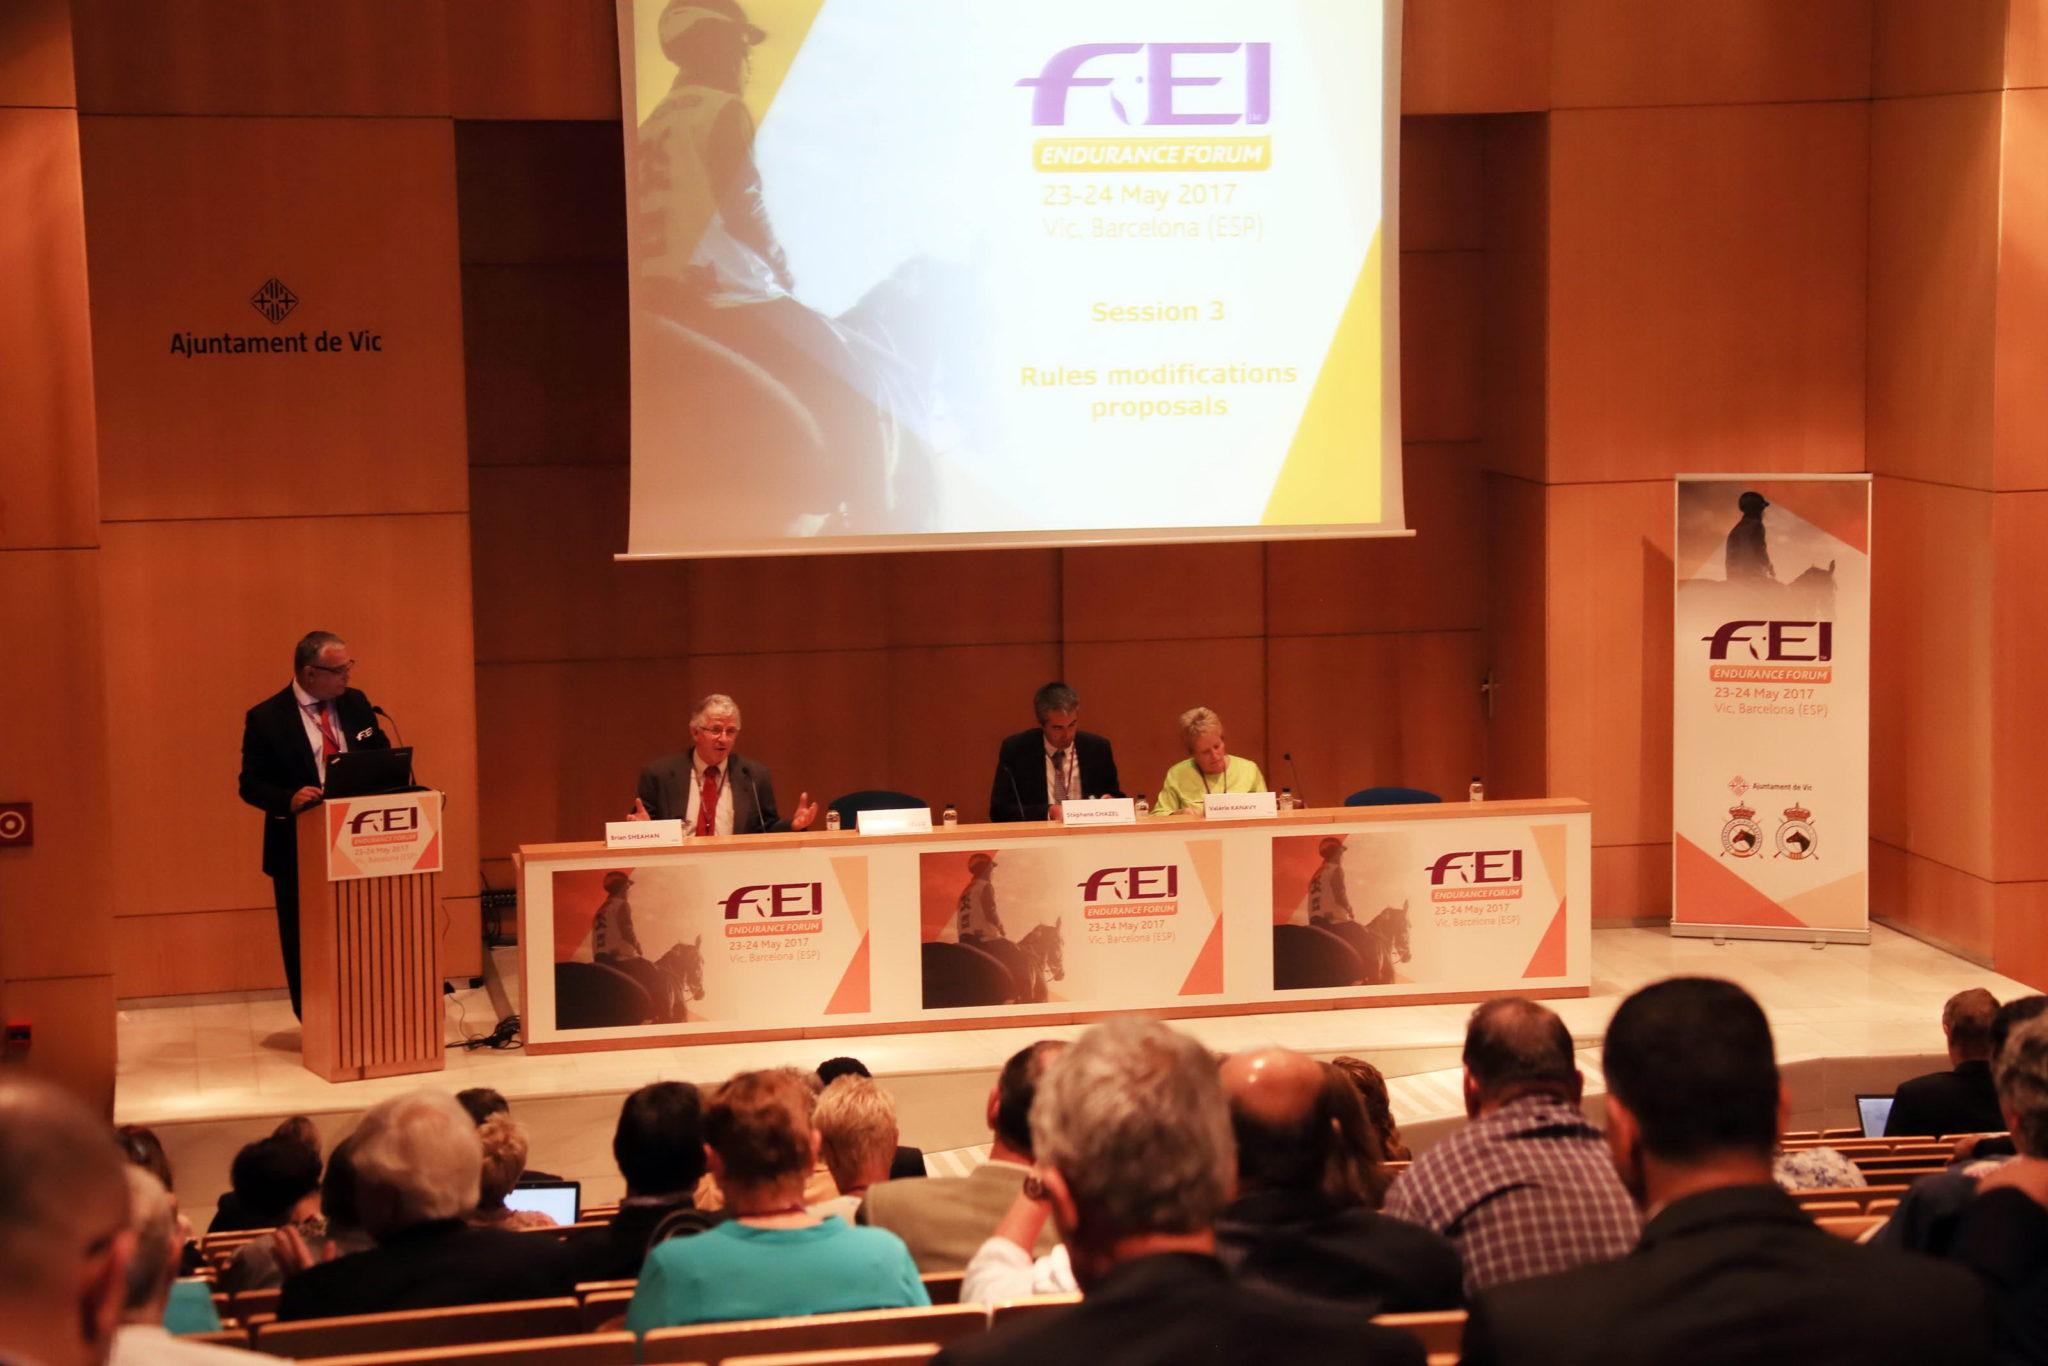 Endurance World FEI Endurance Forum 2017. The forum.